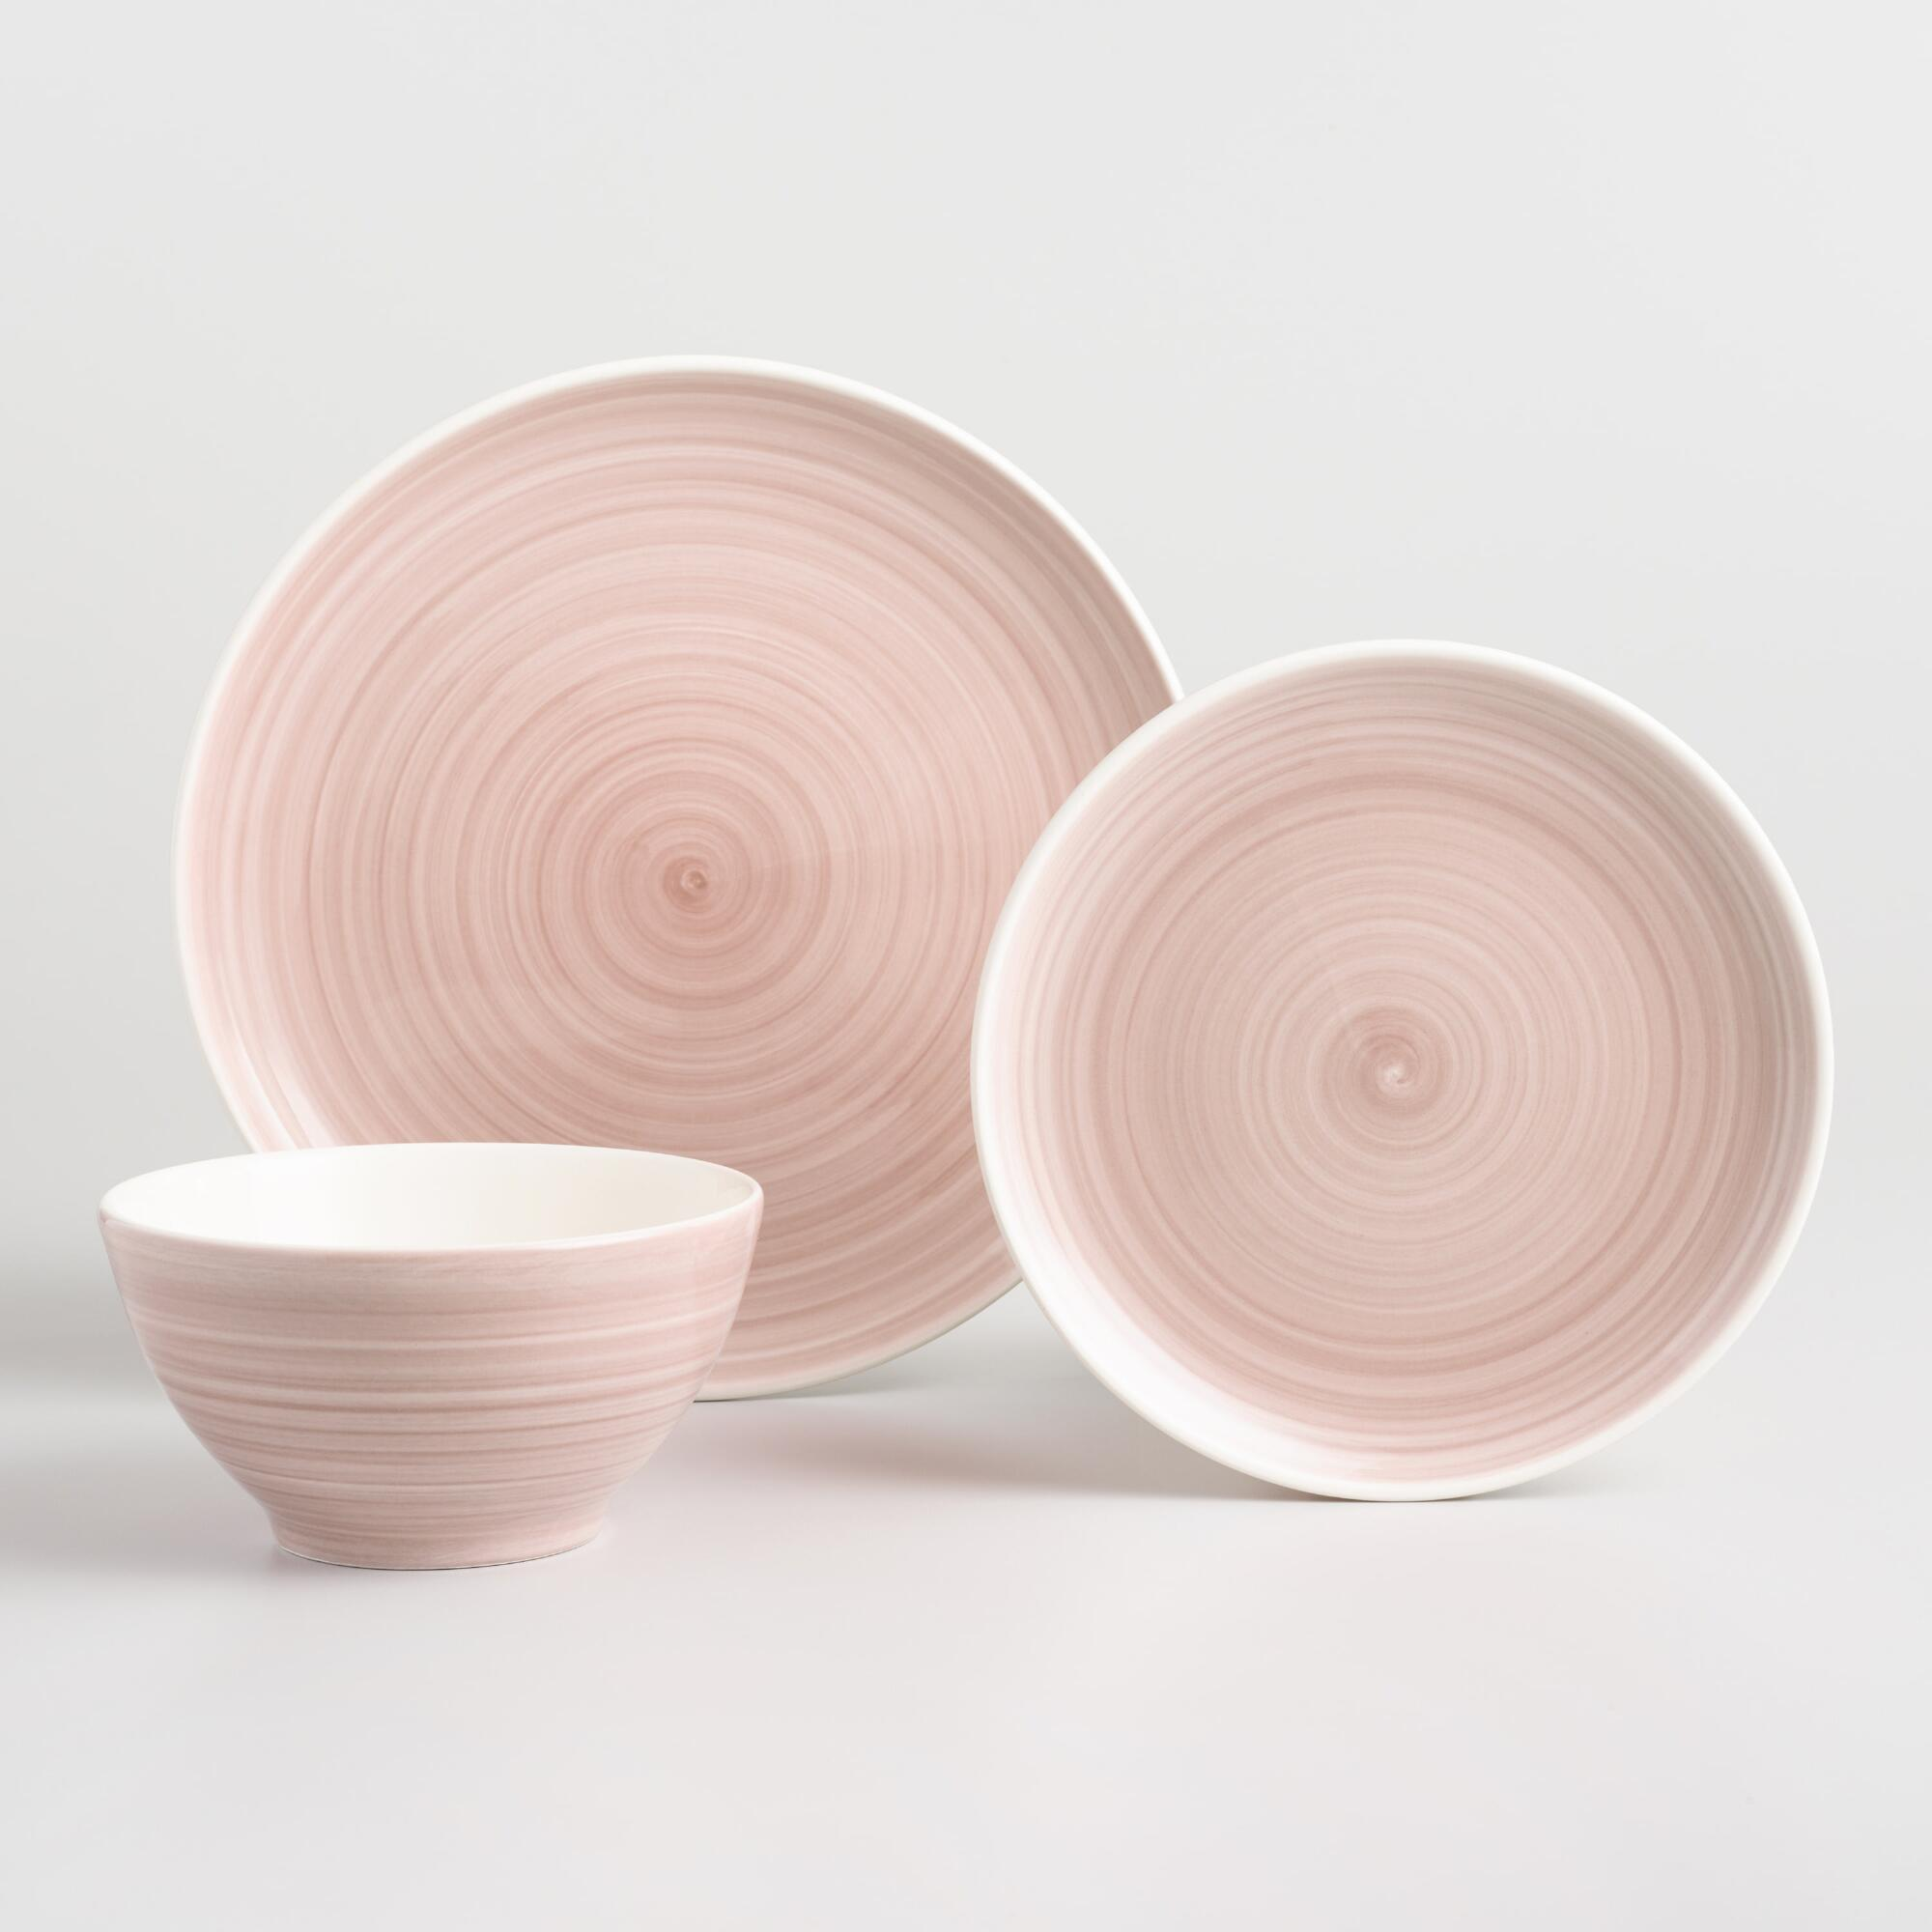 Blush Spinwash Dinnerware Collection by World Market